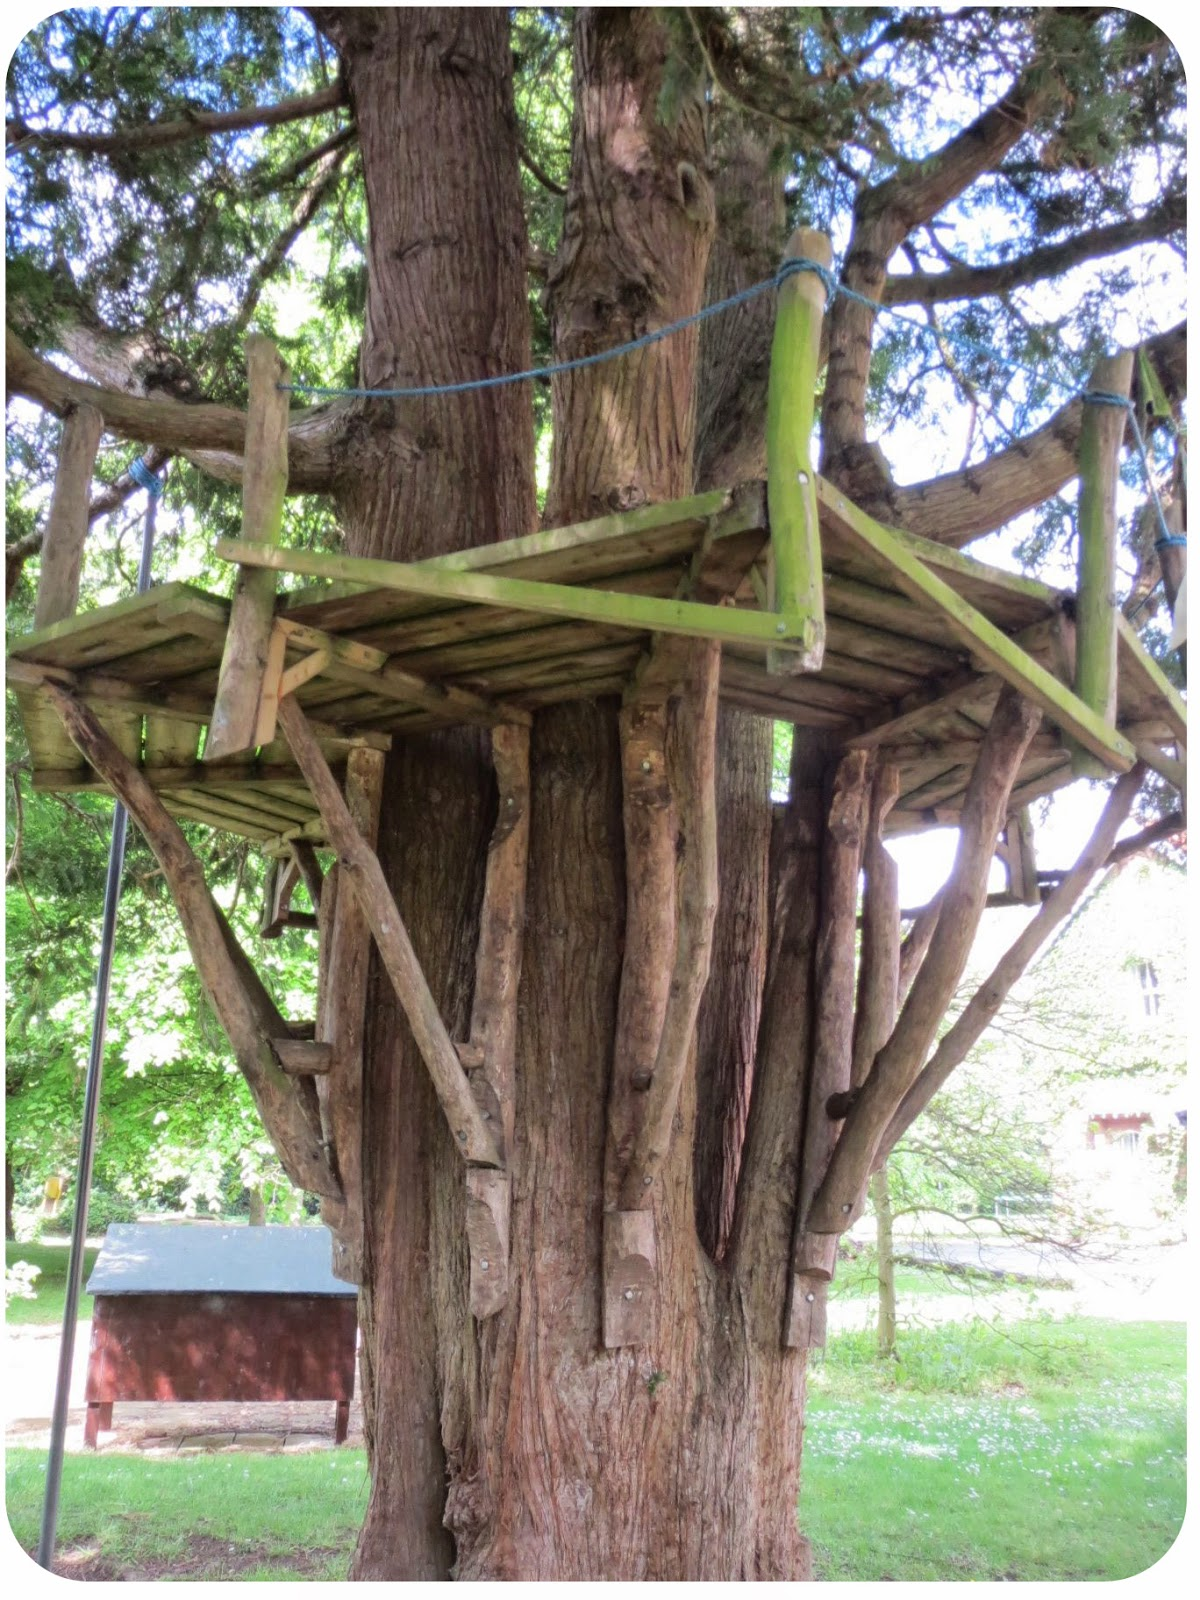 Every child should have access to a tree house